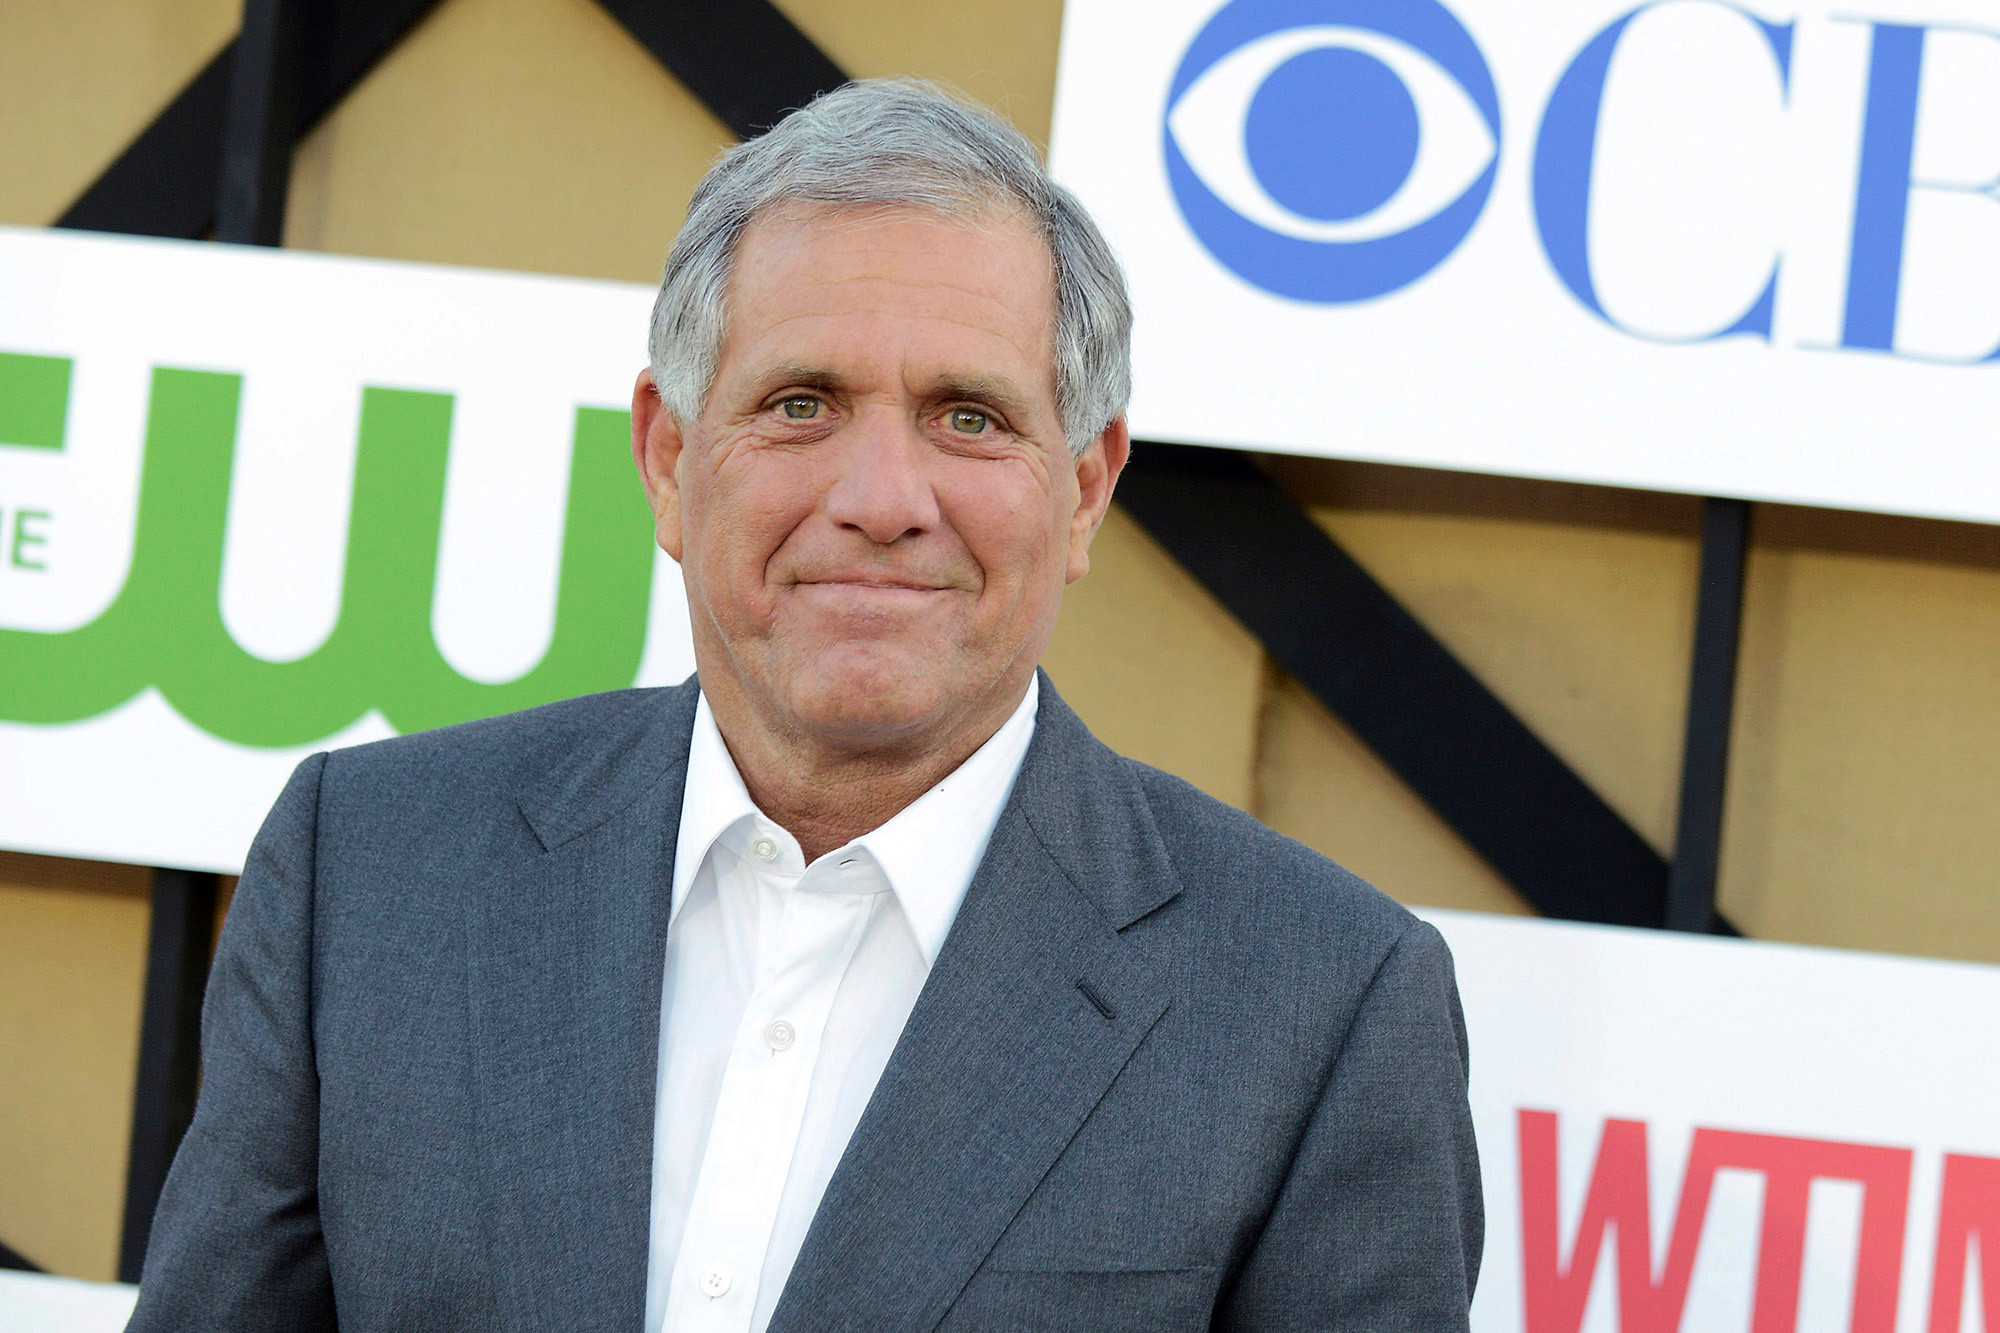 Les Moonves 'deliberately lied,' deleted messages during CBS sex misconduct probe: report